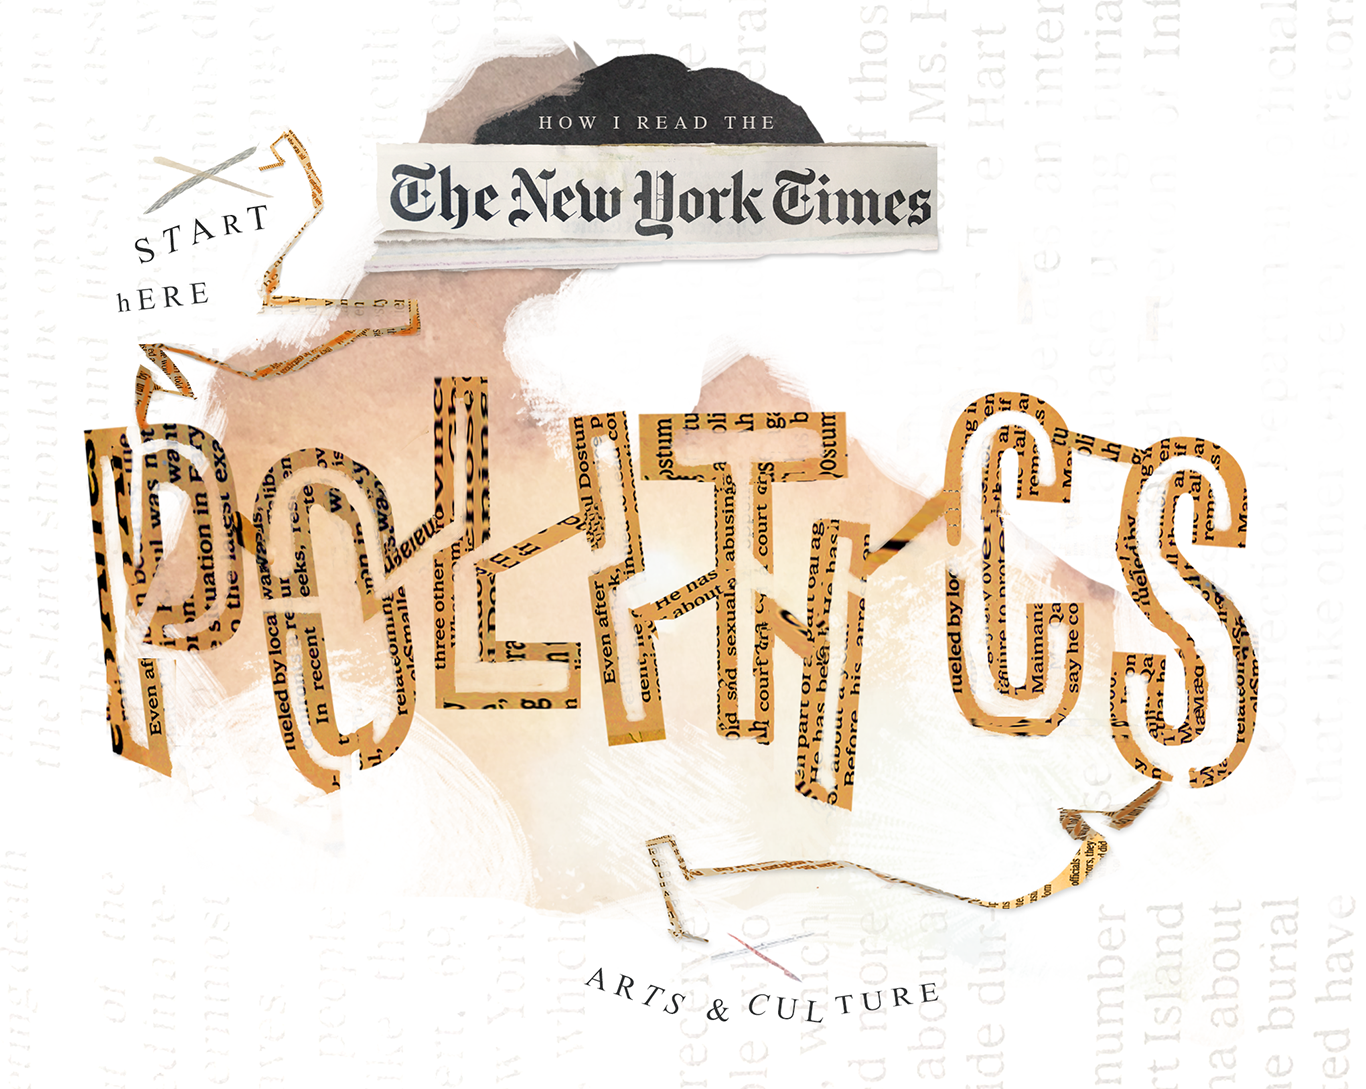 New York Times Collage, Eloise Sherrid